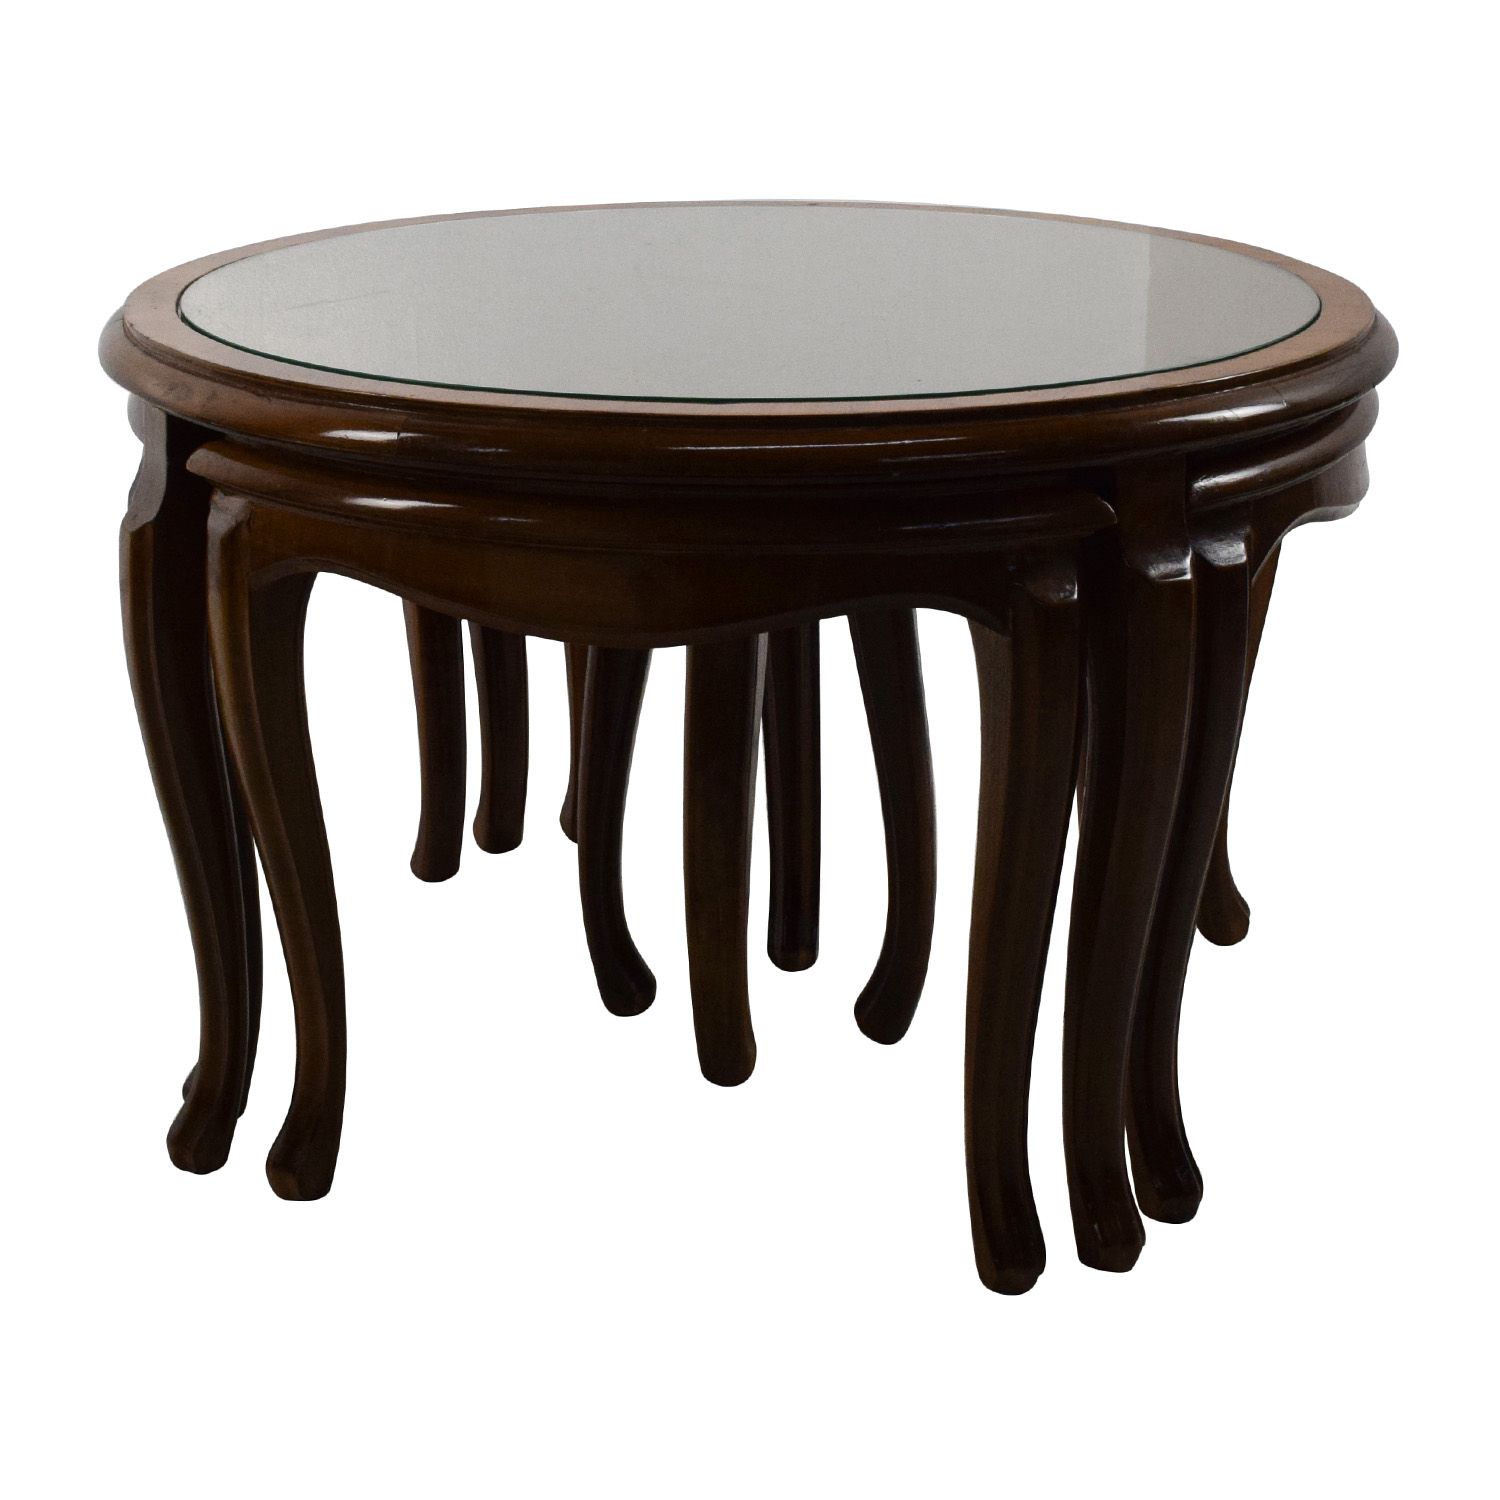 69 Off Round Glass Top Coffee Table With 4 Nesting Stools Tables